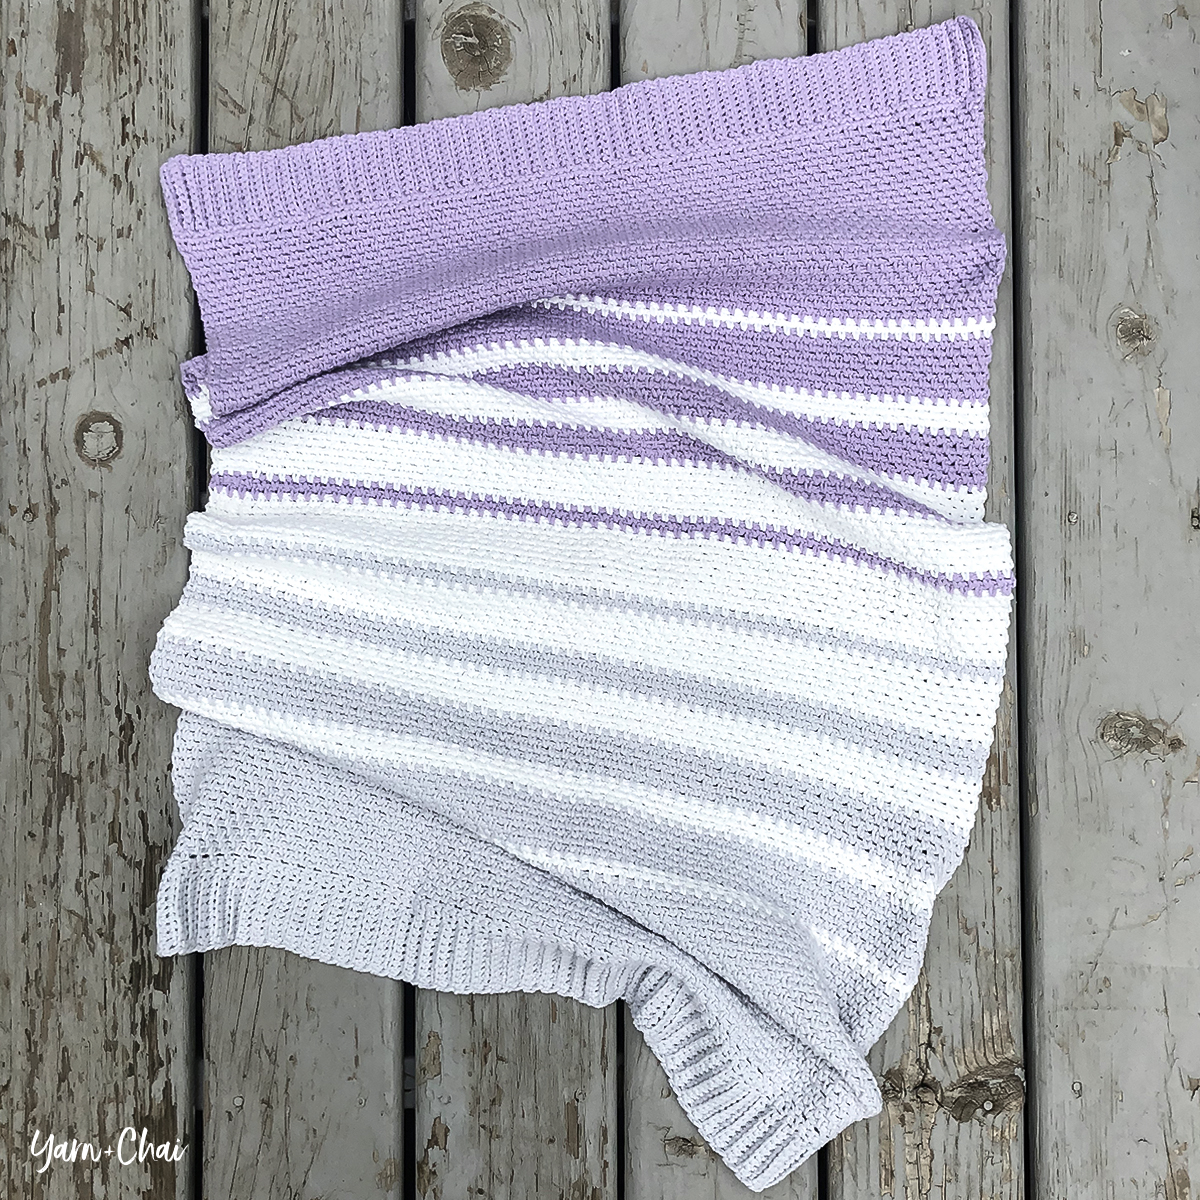 photo regarding Free Printable Knitting Patterns for Baby Blankets referred to as Linen Sch Kid Blanket